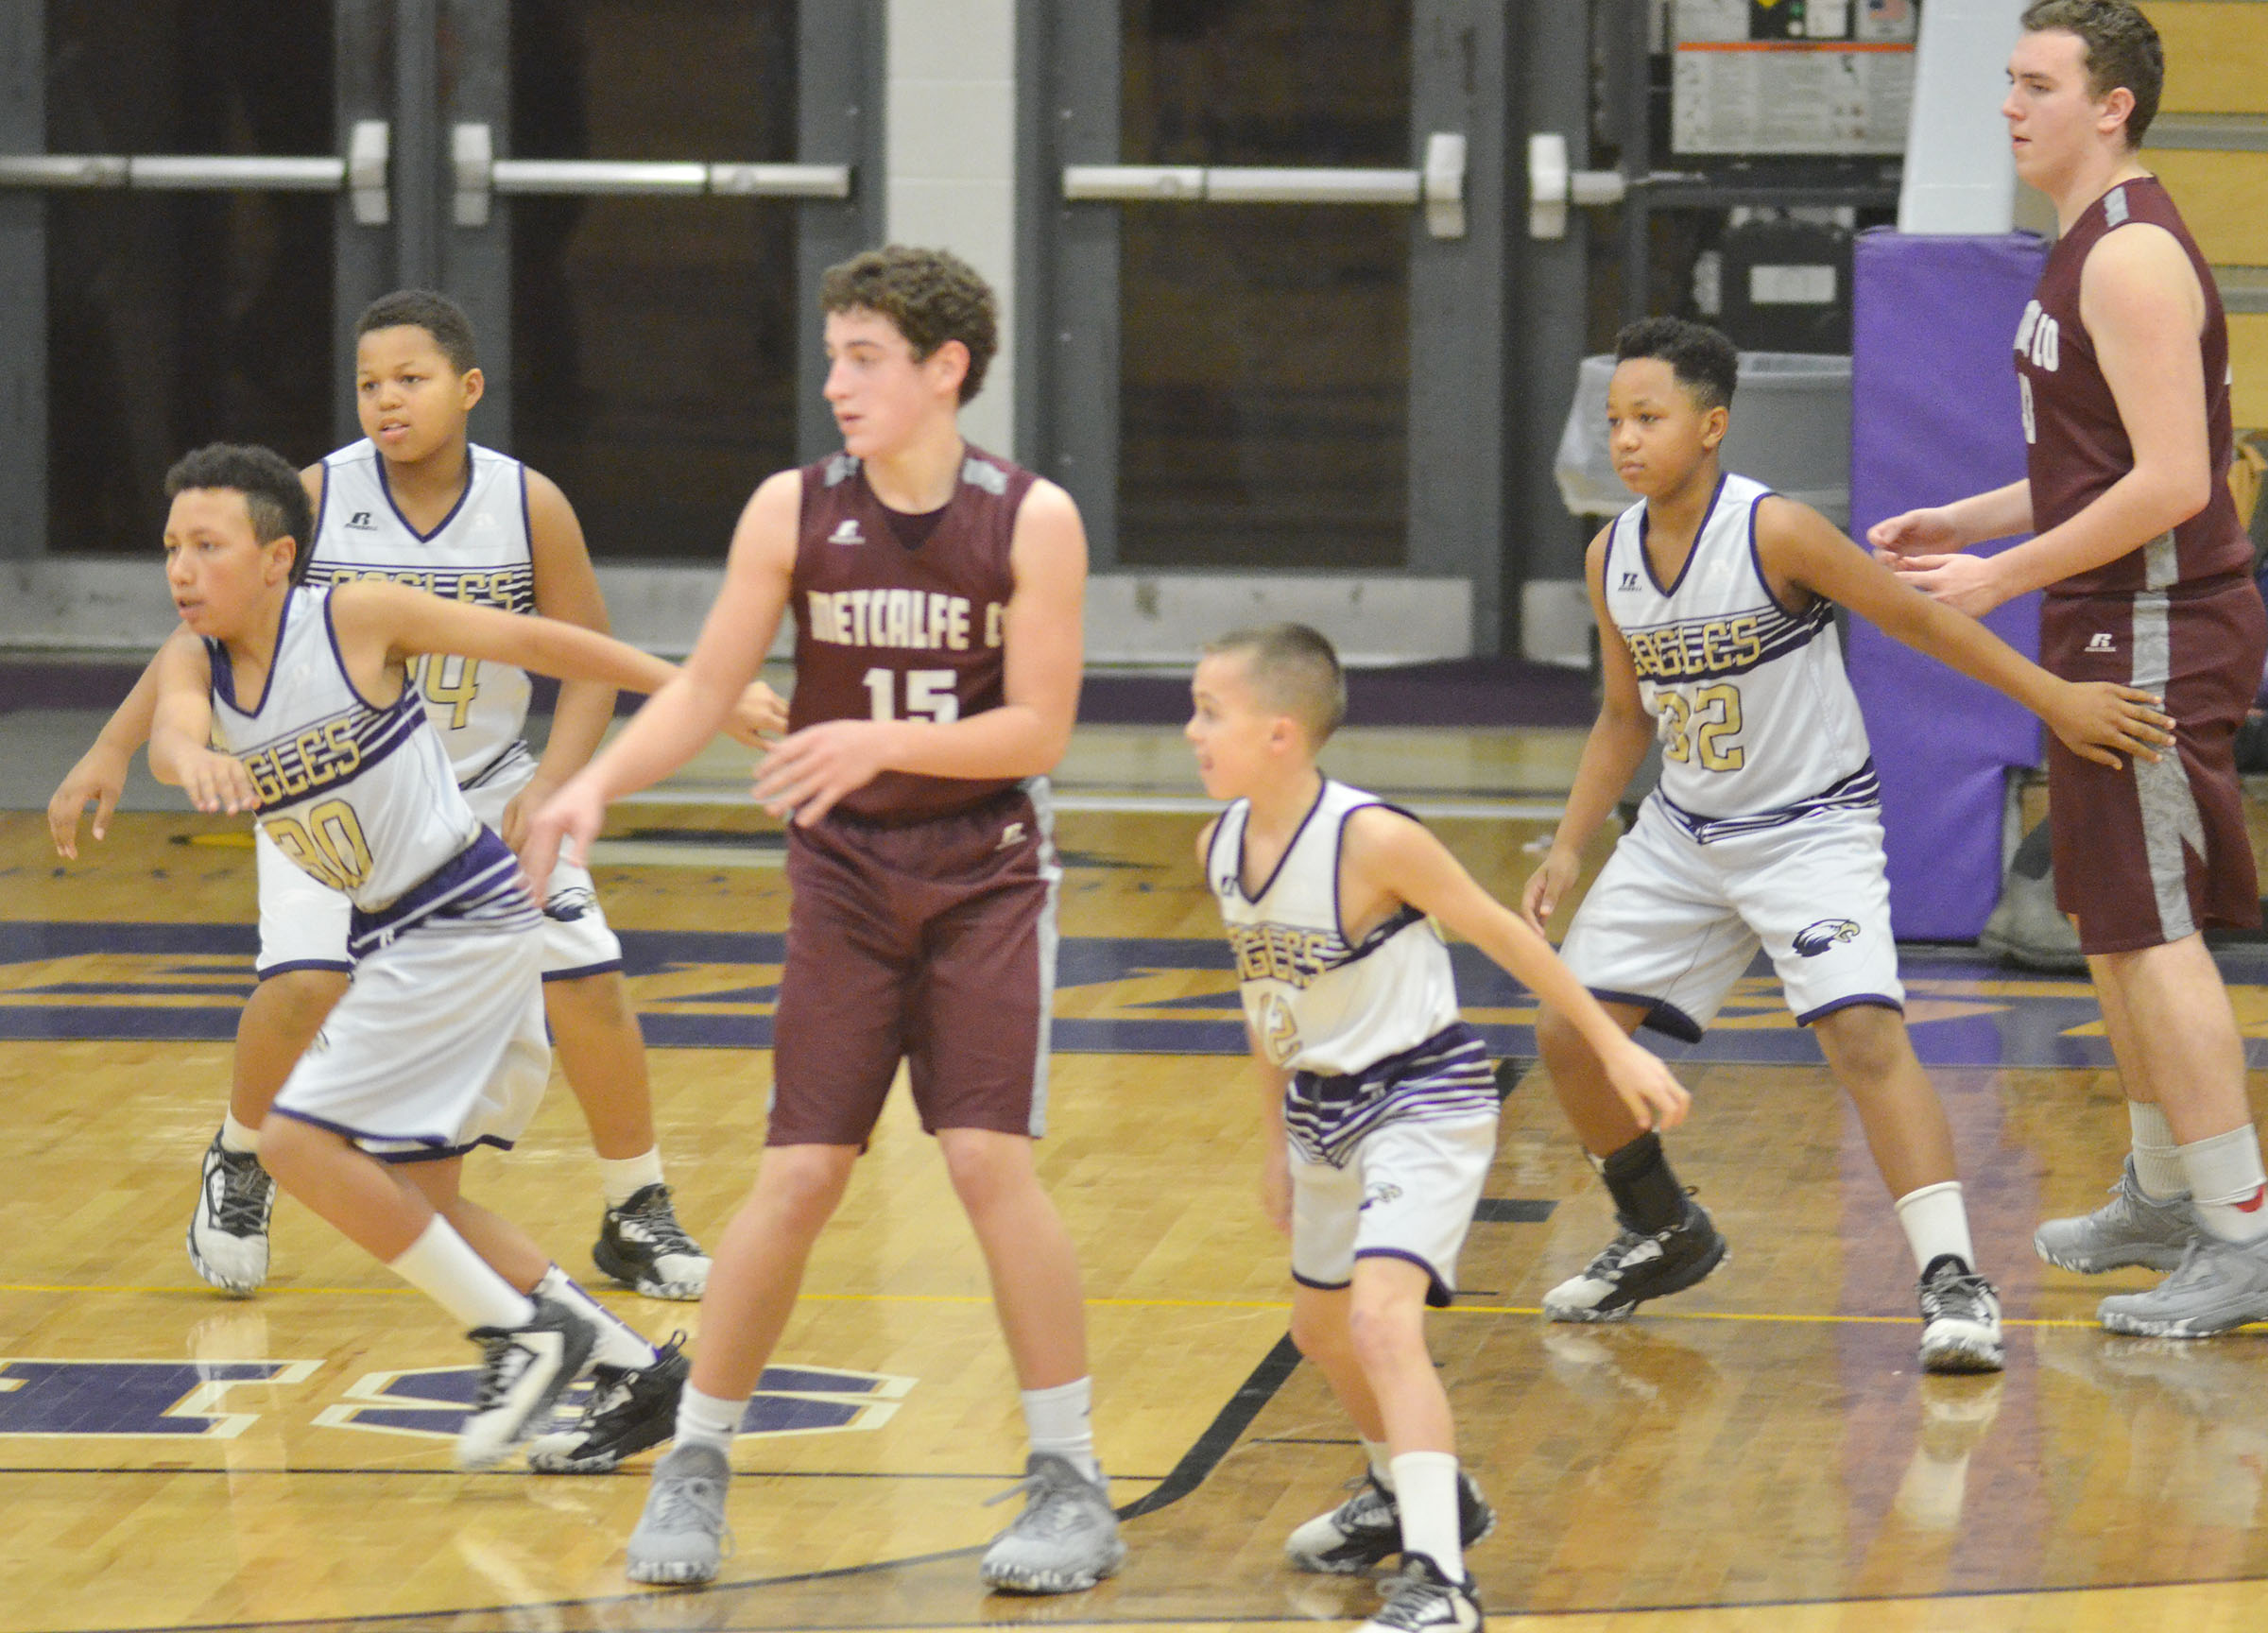 From left, CMS eighth-grader Jastyn Shively and sixth-graders Keondre Weathers, Chase Hord and Deondre Weathers play defense.